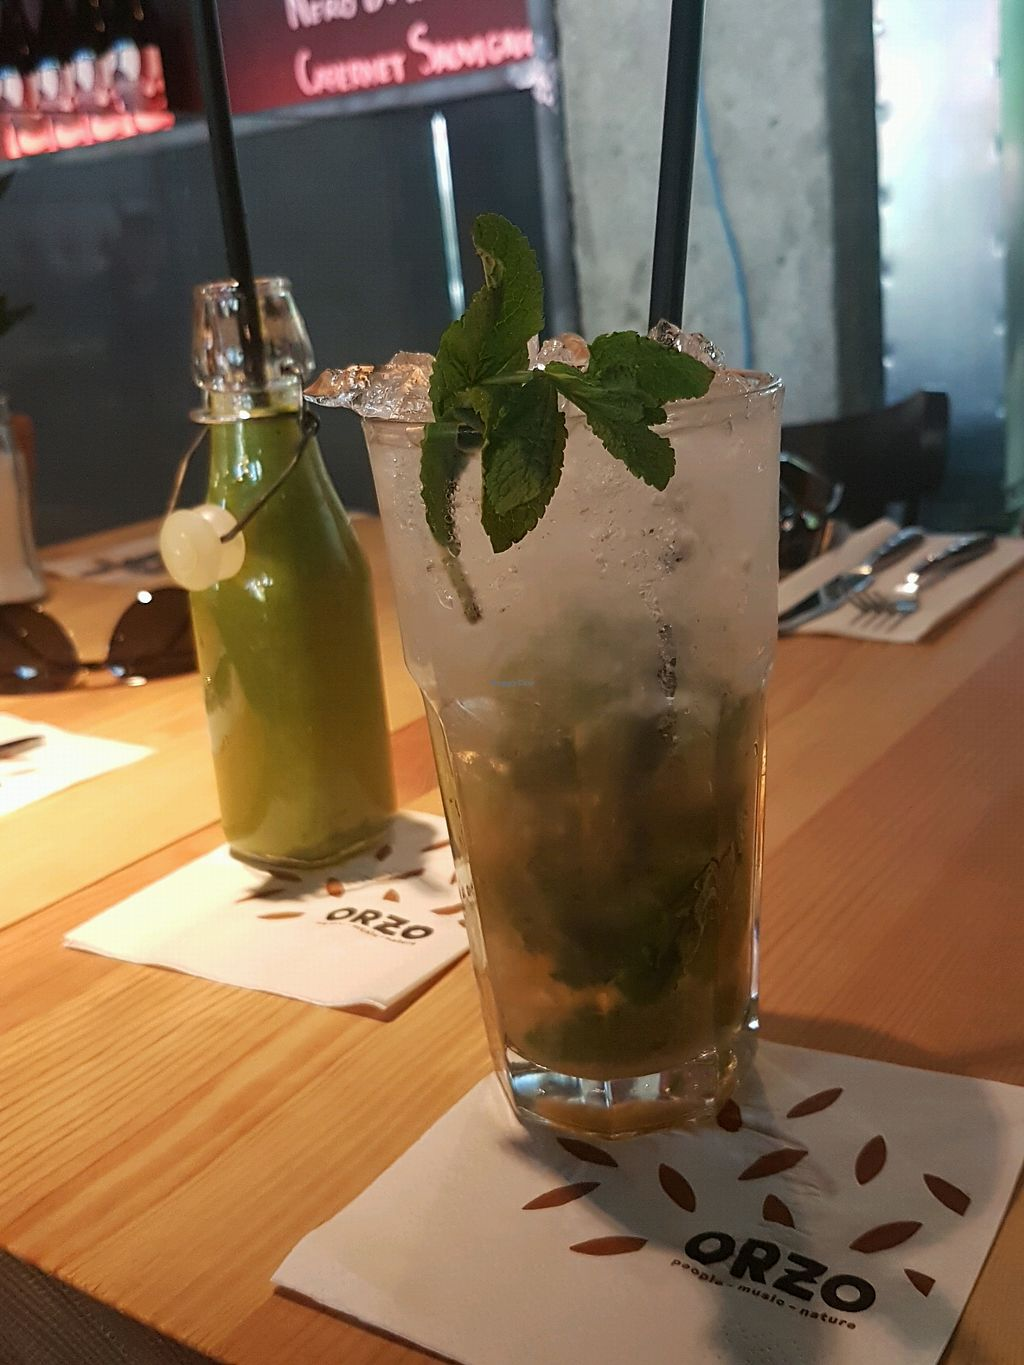 """Photo of Orzo People Music Nature  by <a href=""""/members/profile/PerrySwift"""">PerrySwift</a> <br/>alcohol free mojito and smoothie <br/> April 20, 2018  - <a href='/contact/abuse/image/114841/388770'>Report</a>"""